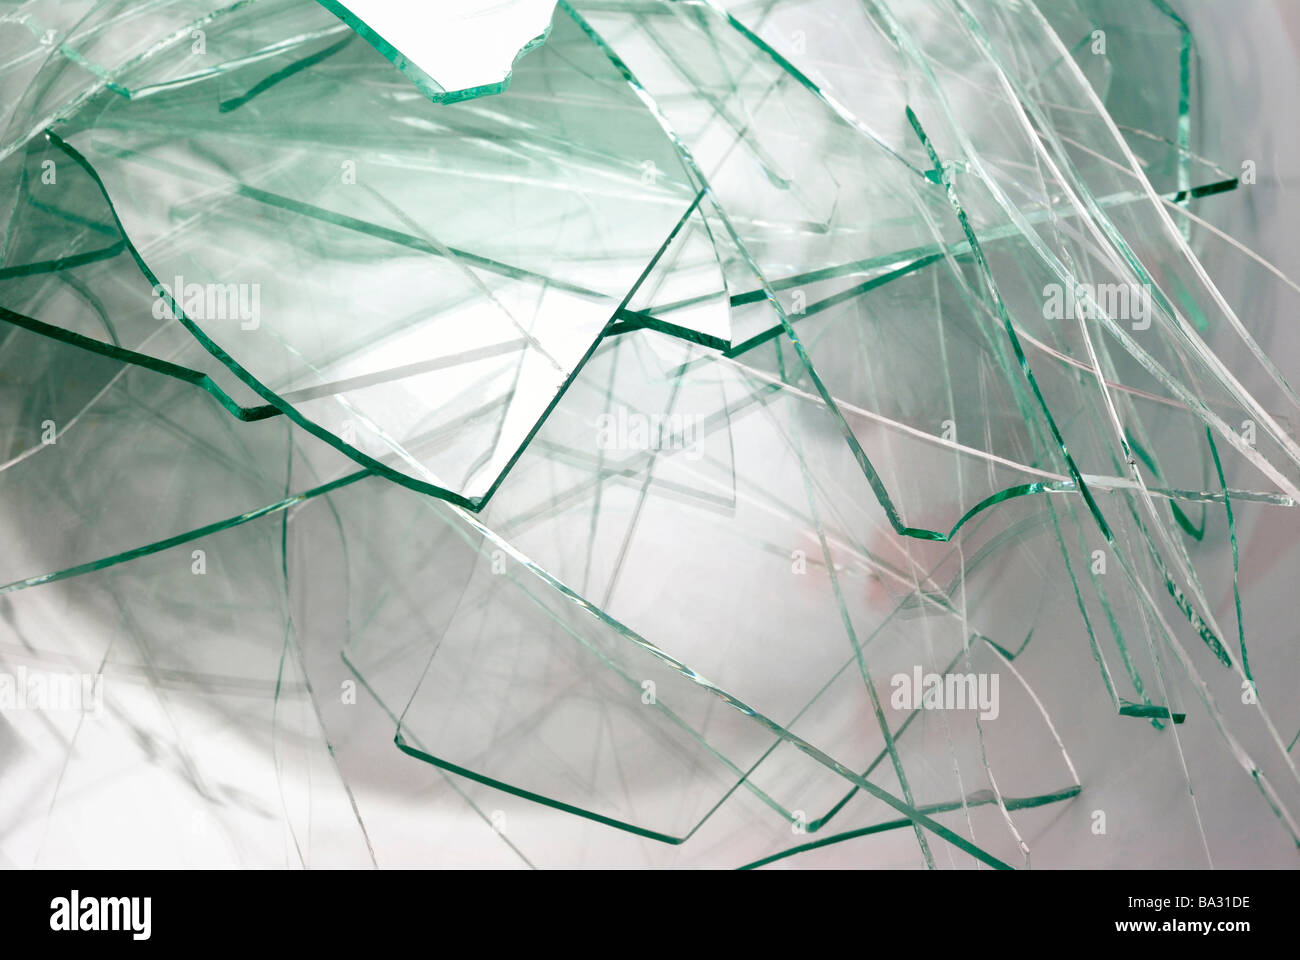 Shattered Glass - Stock Image